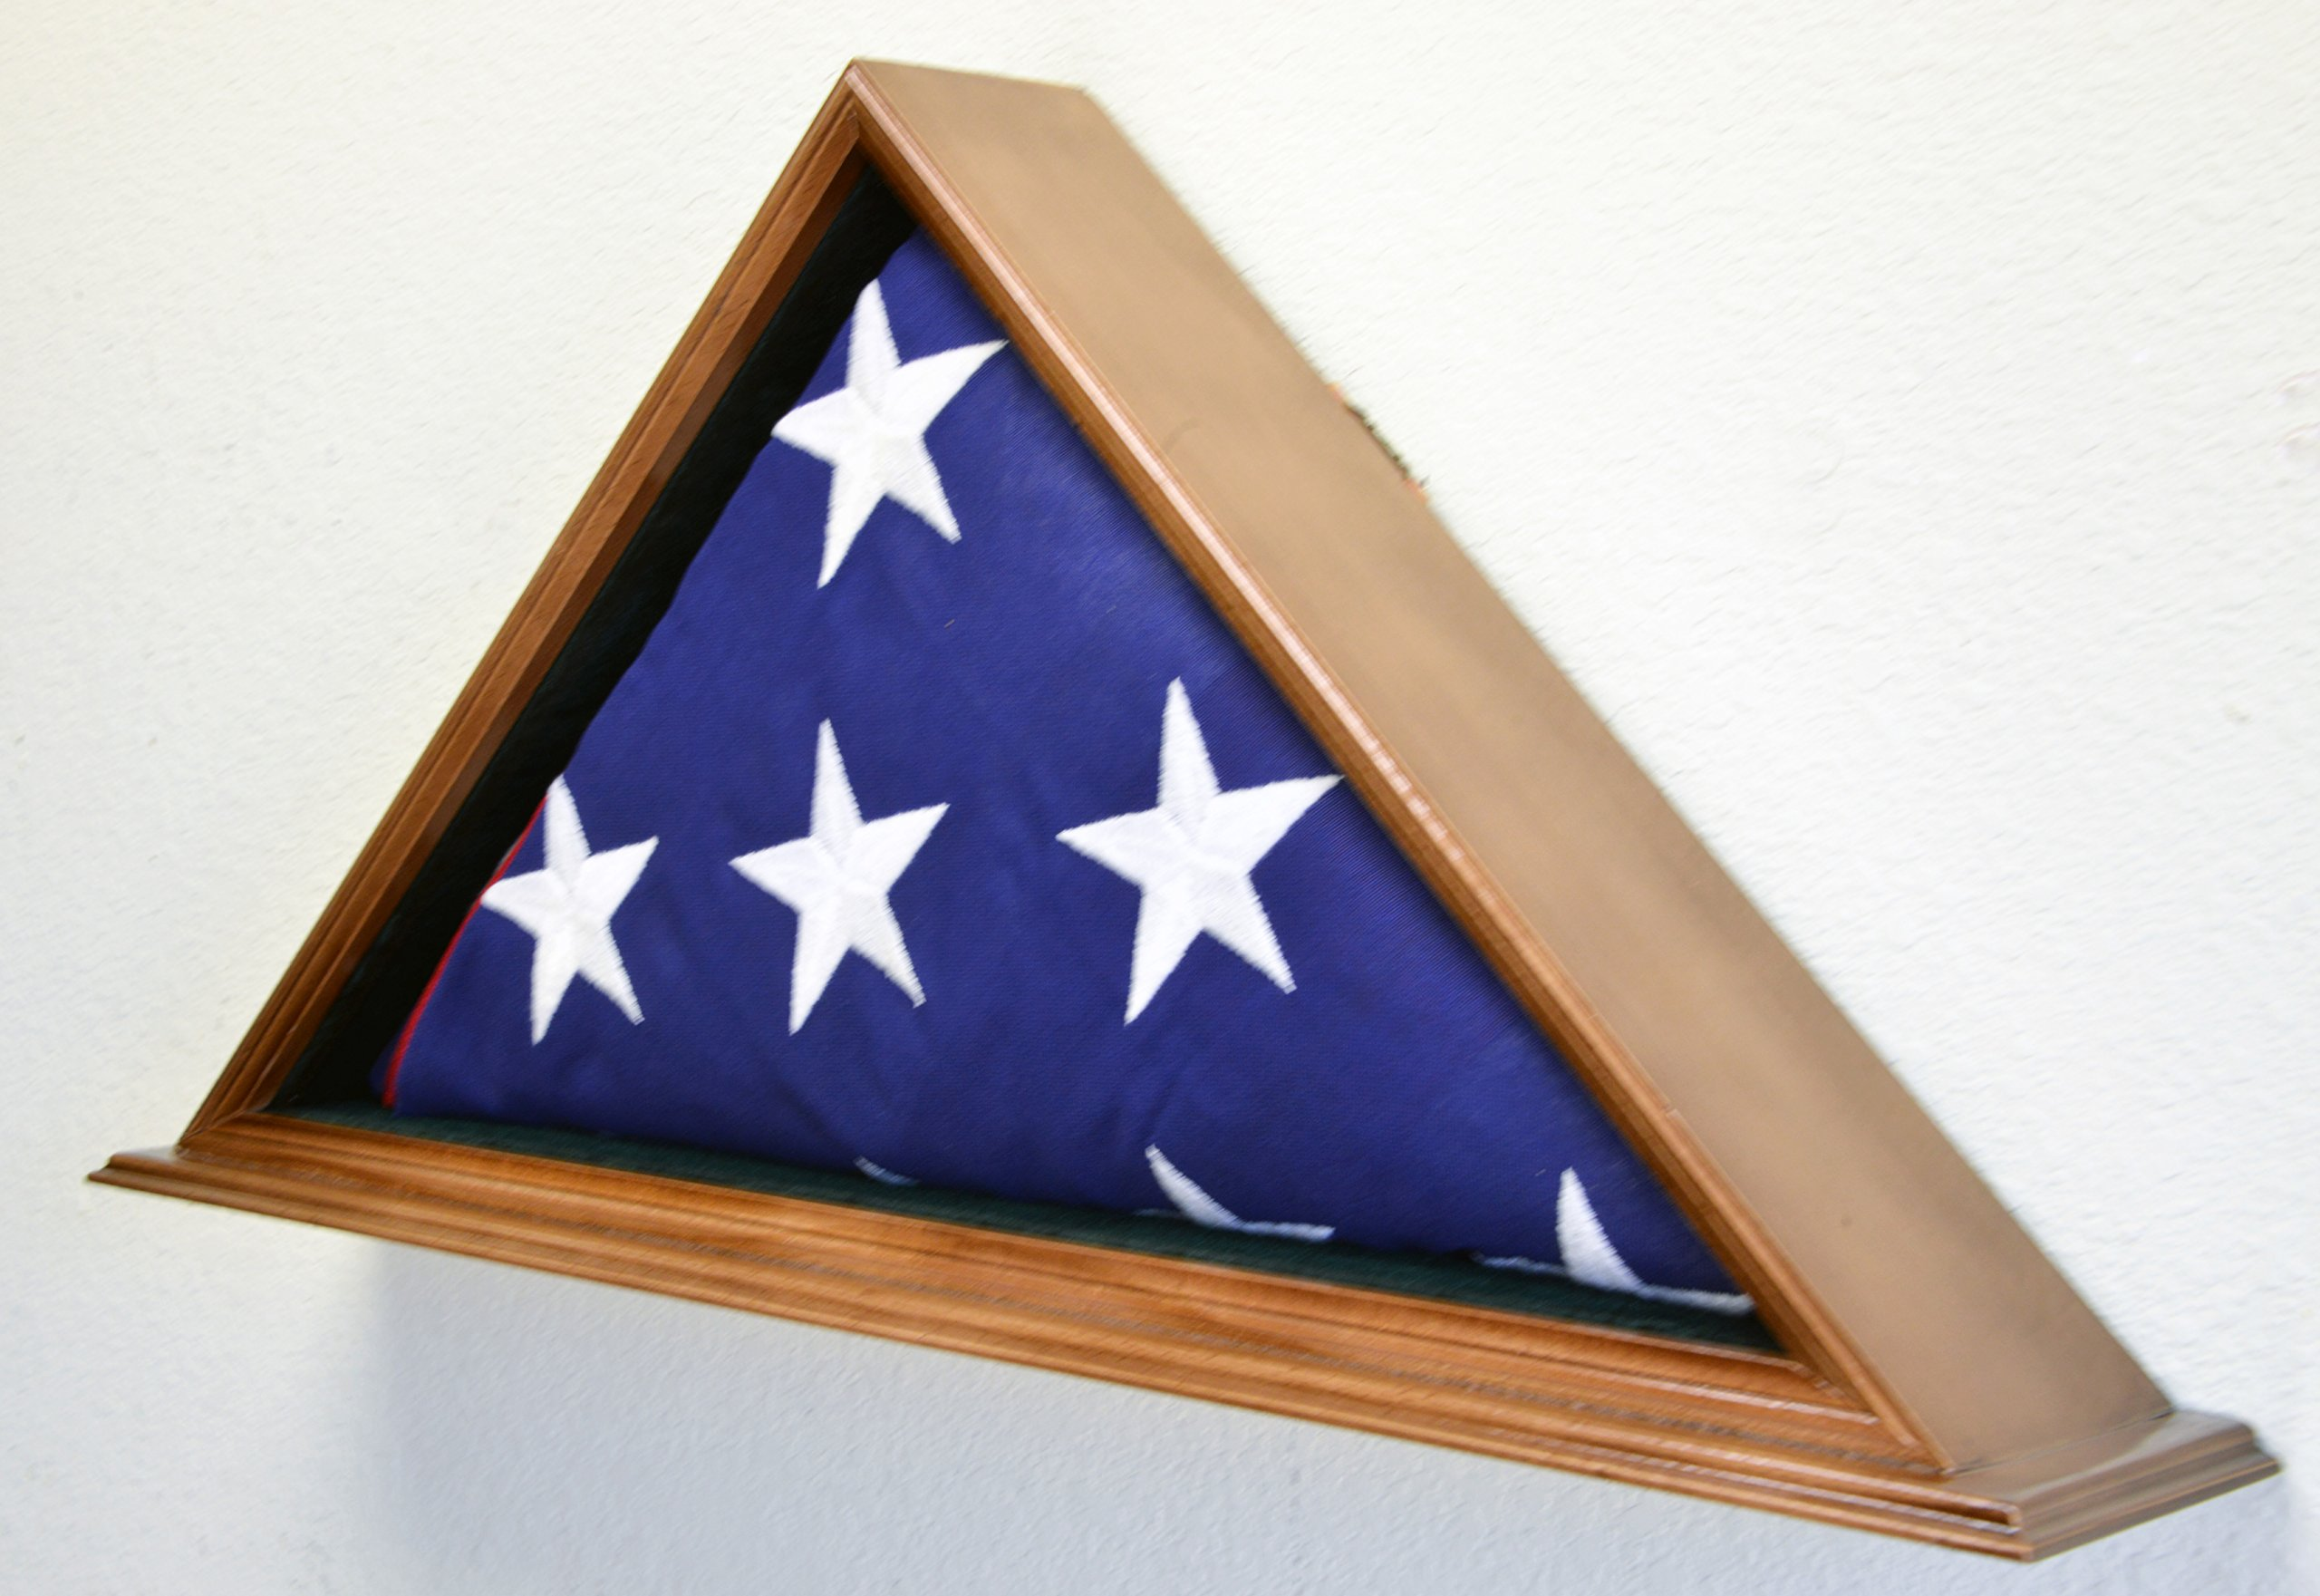 Flag Display Case for 5 x 9.5 Burial/Funeral/Casket/Veterans Military Flag Box Solid Wood USA (Walnut Finish) by sfDisplay.com,LLC. (Image #3)